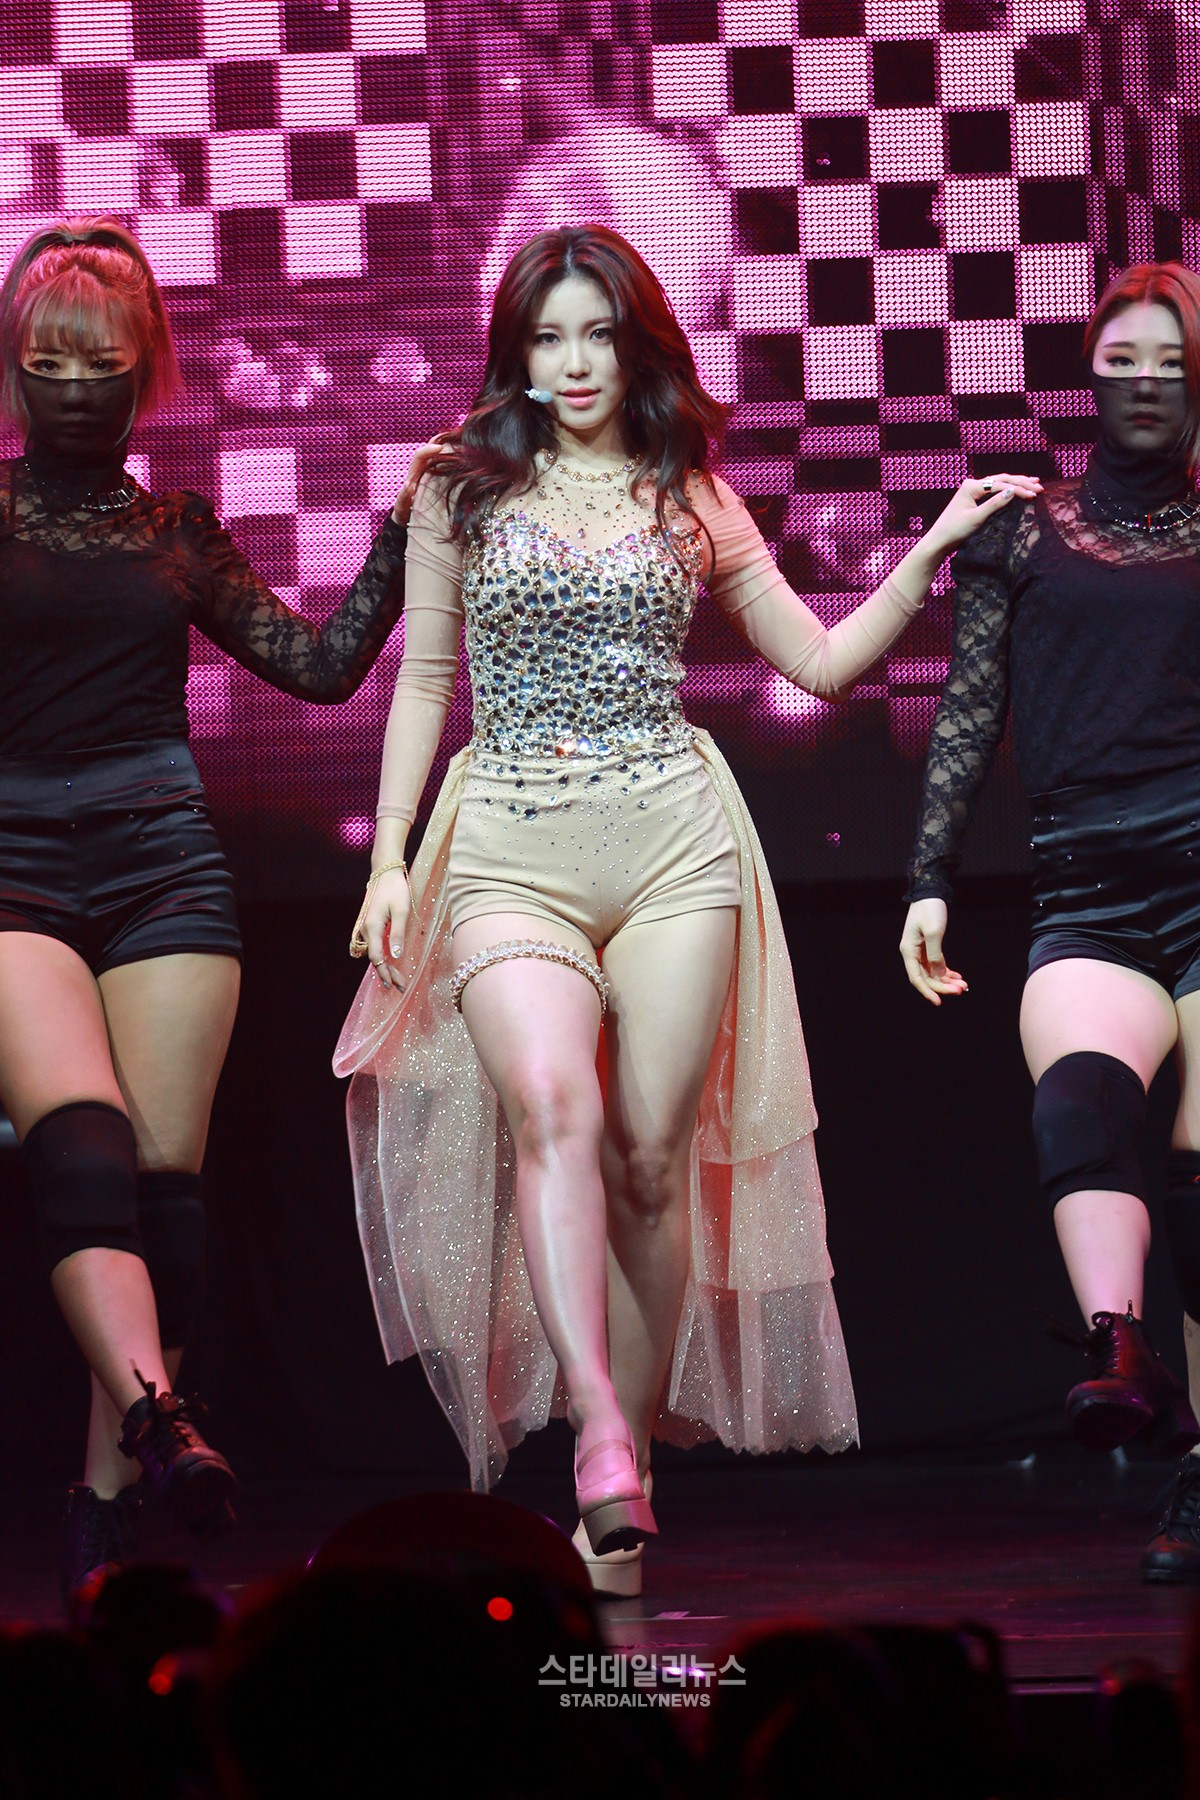 Secret's Hyosung Wants Attention Paid to Her Music, Not Just Her Body